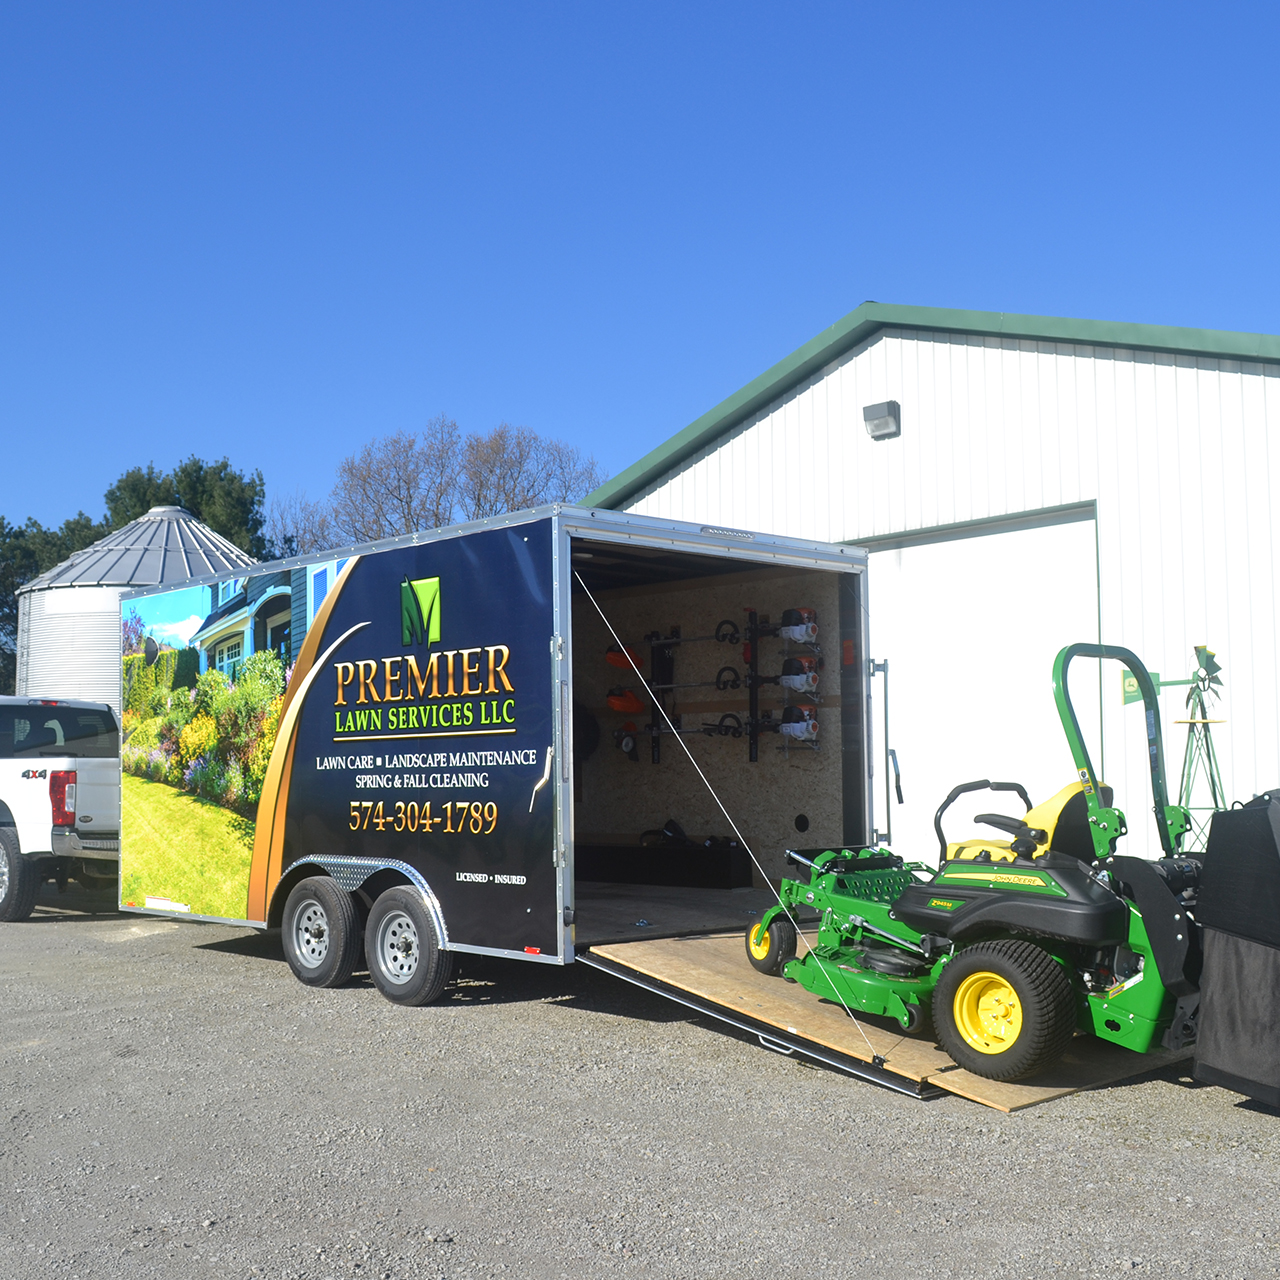 Expect a hardworking trailer built extra tough to withstand the elements.